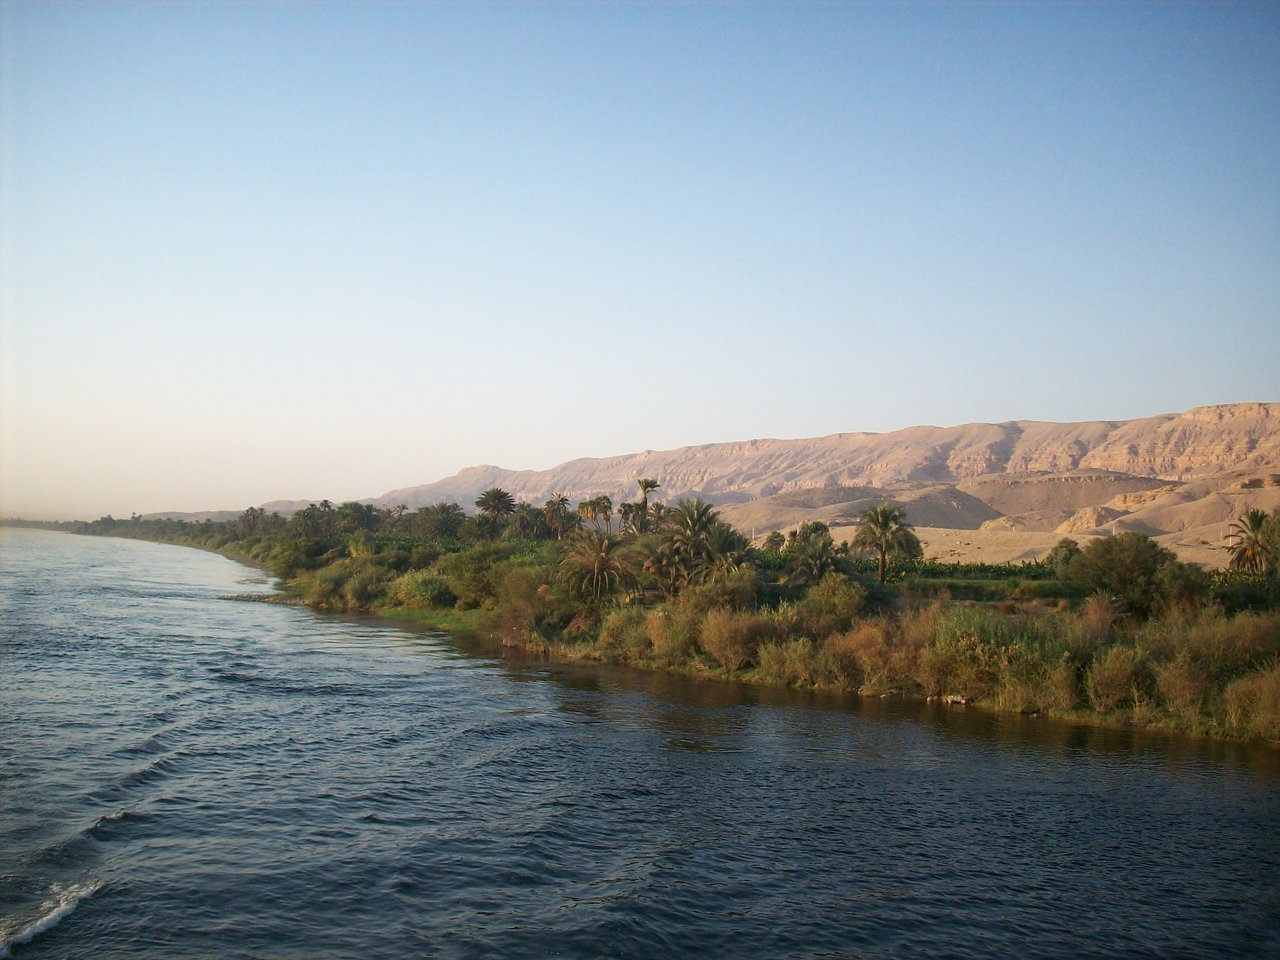 https://cdn2.trend.az/media/pictures/2015/03/06/nile_river_.jpg